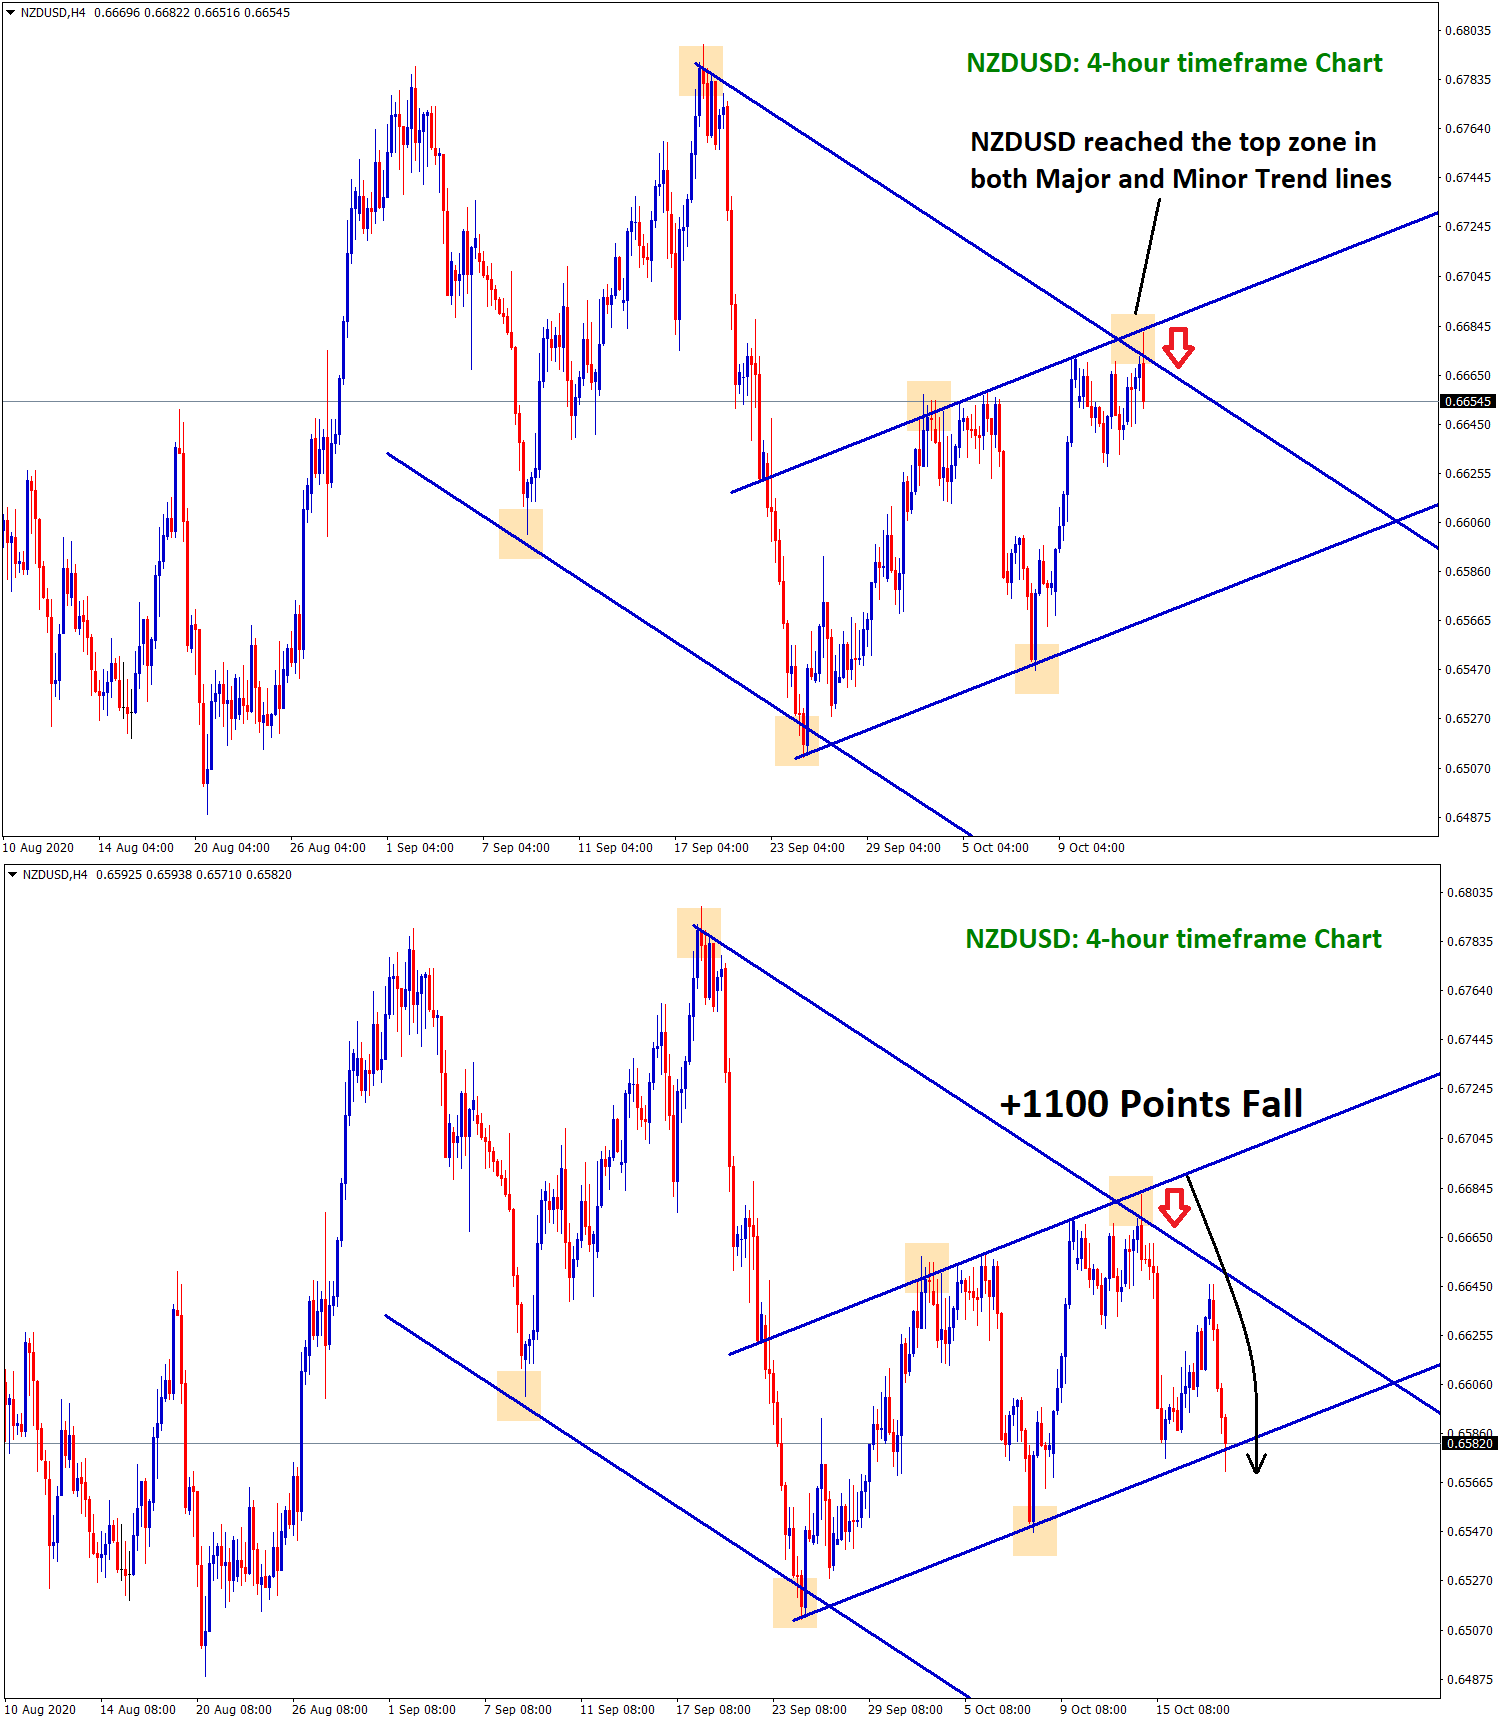 nzdusd fall from the top major and minor trend line